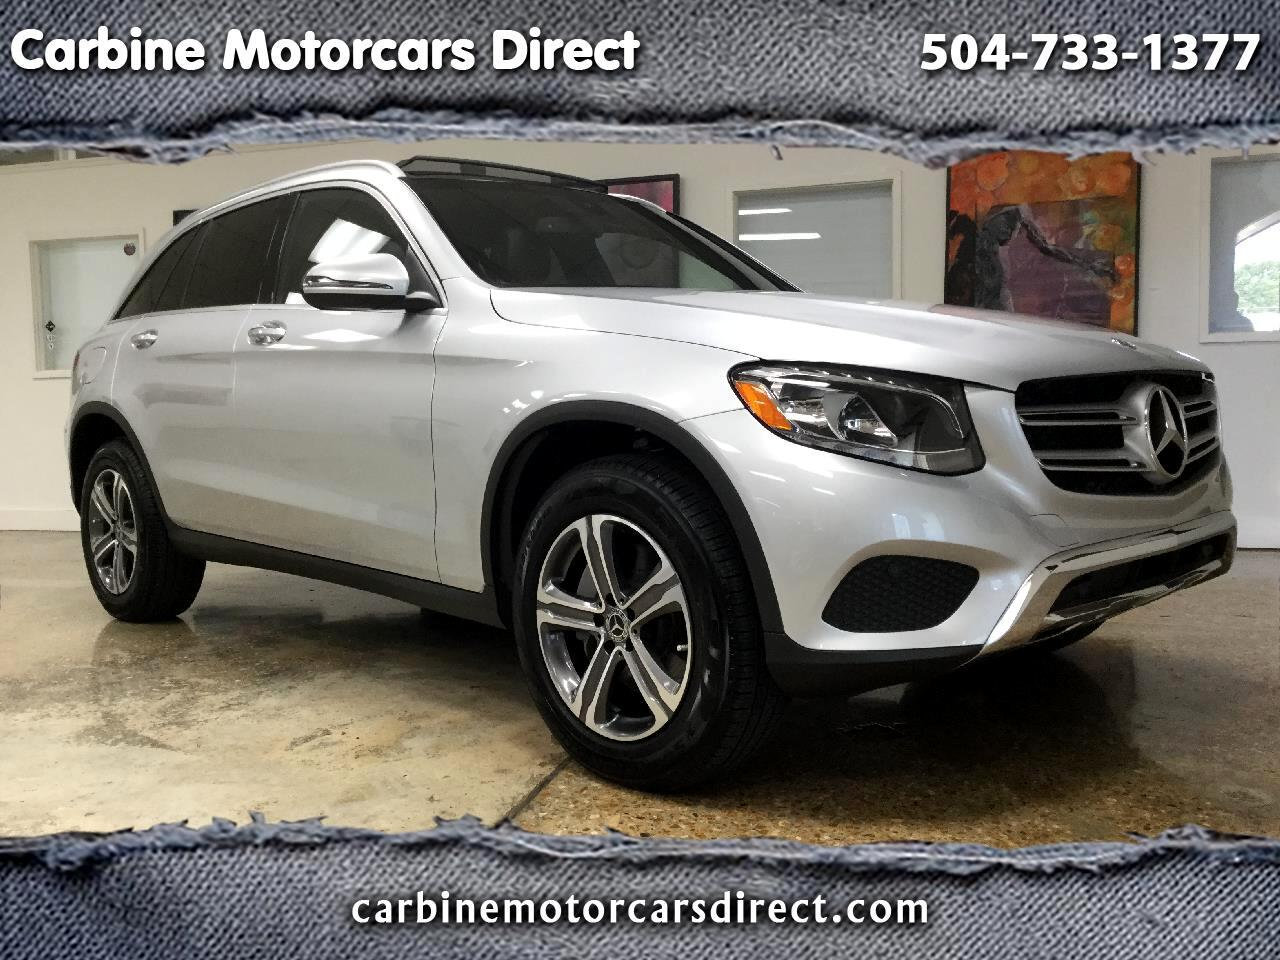 Mercedes-Benz GLC GLC 300 SUV 2019